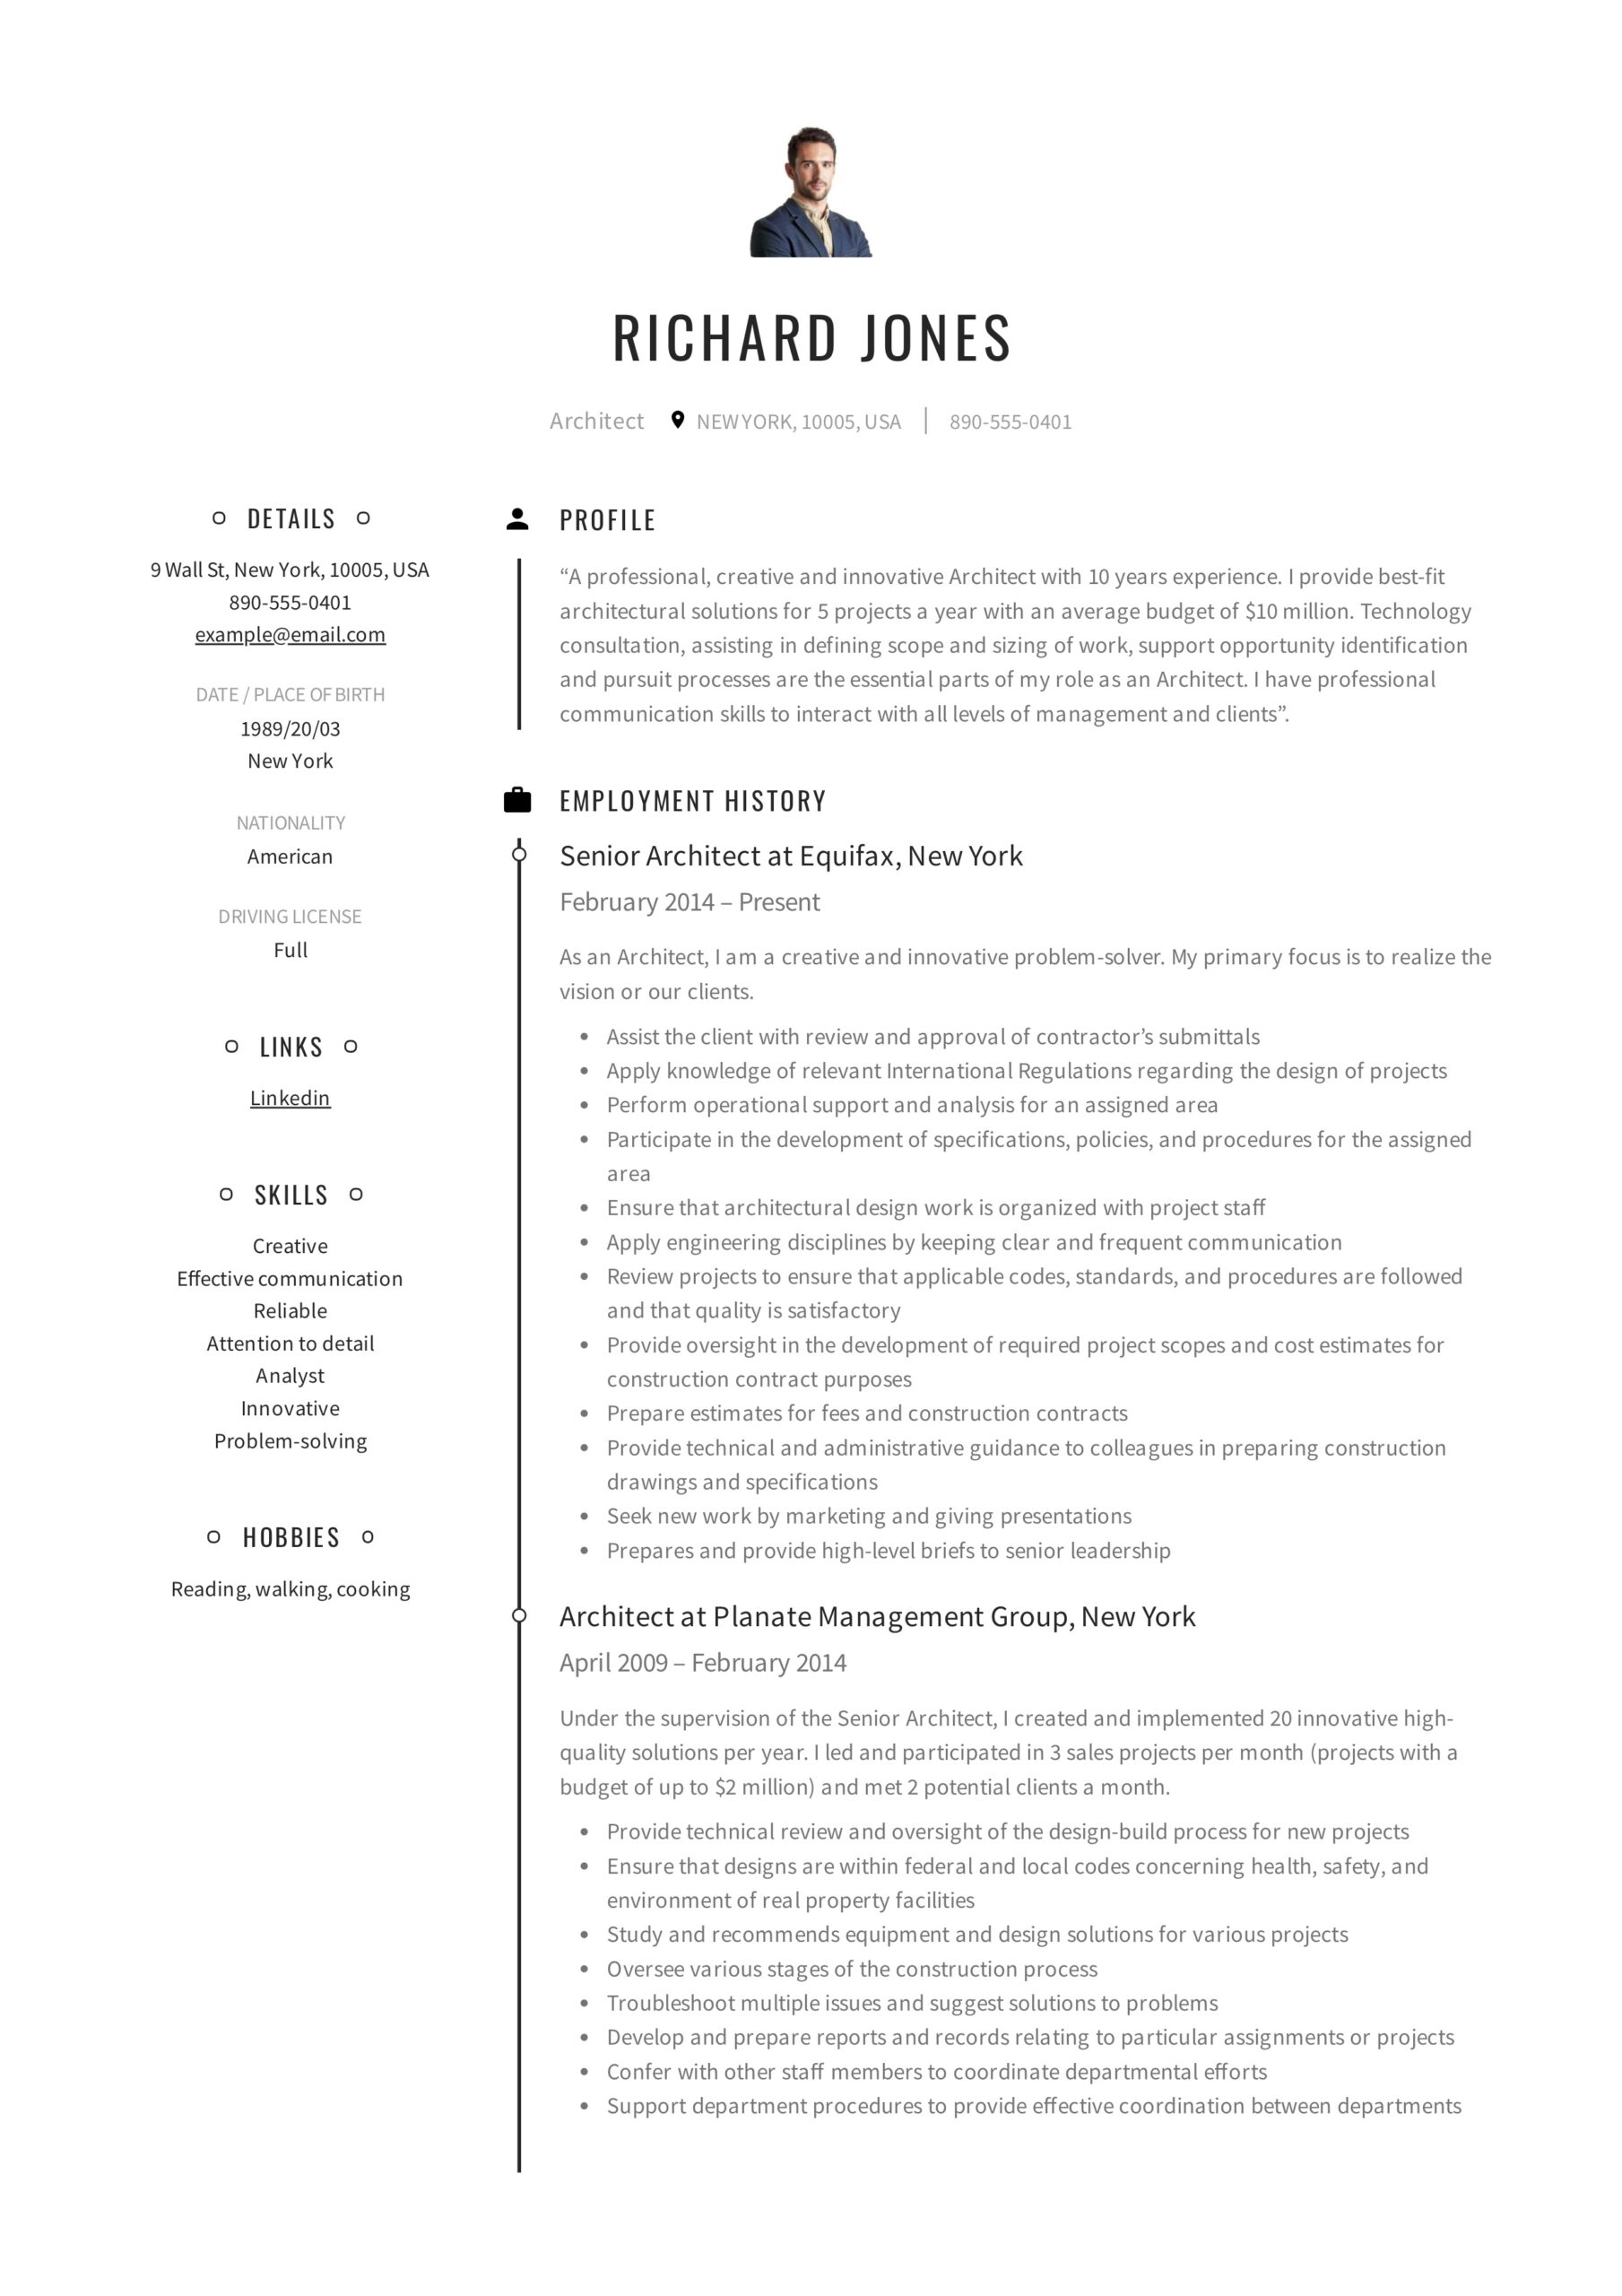 architect resume writing guide samples pdf word architecture firm sample richard creative Resume Architecture Firm Resume